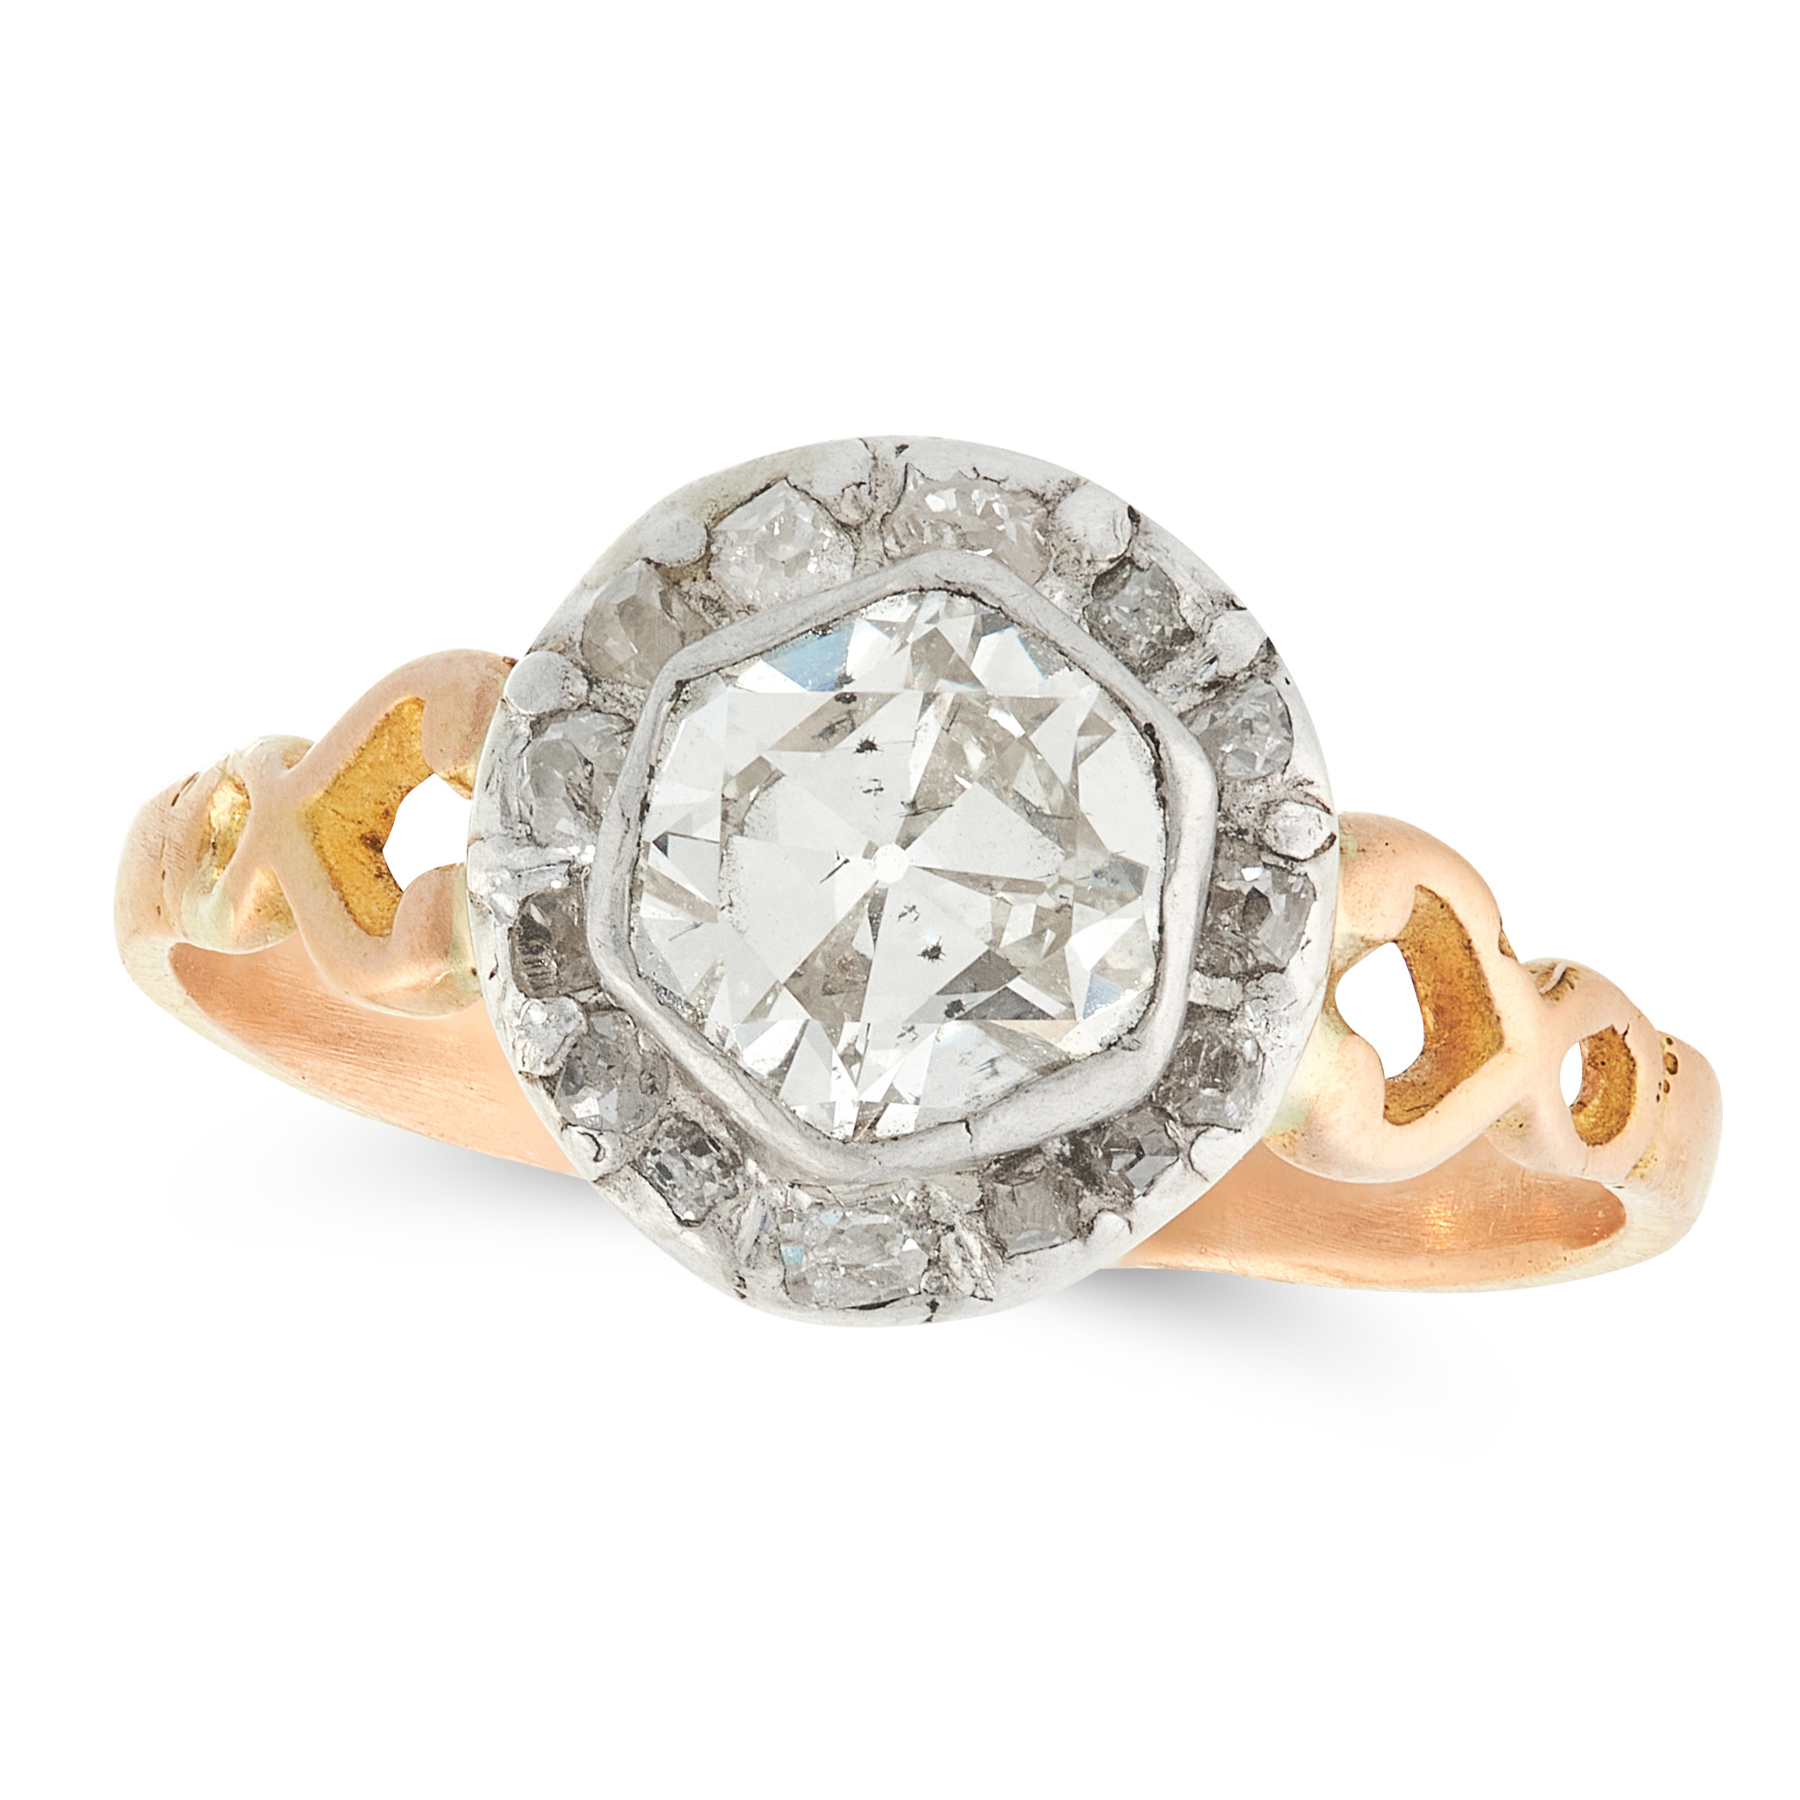 AN ANTIQUE DIAMOND SOLITAIRE RING, 19TH CENTURY in yellow gold and silver, set with a central